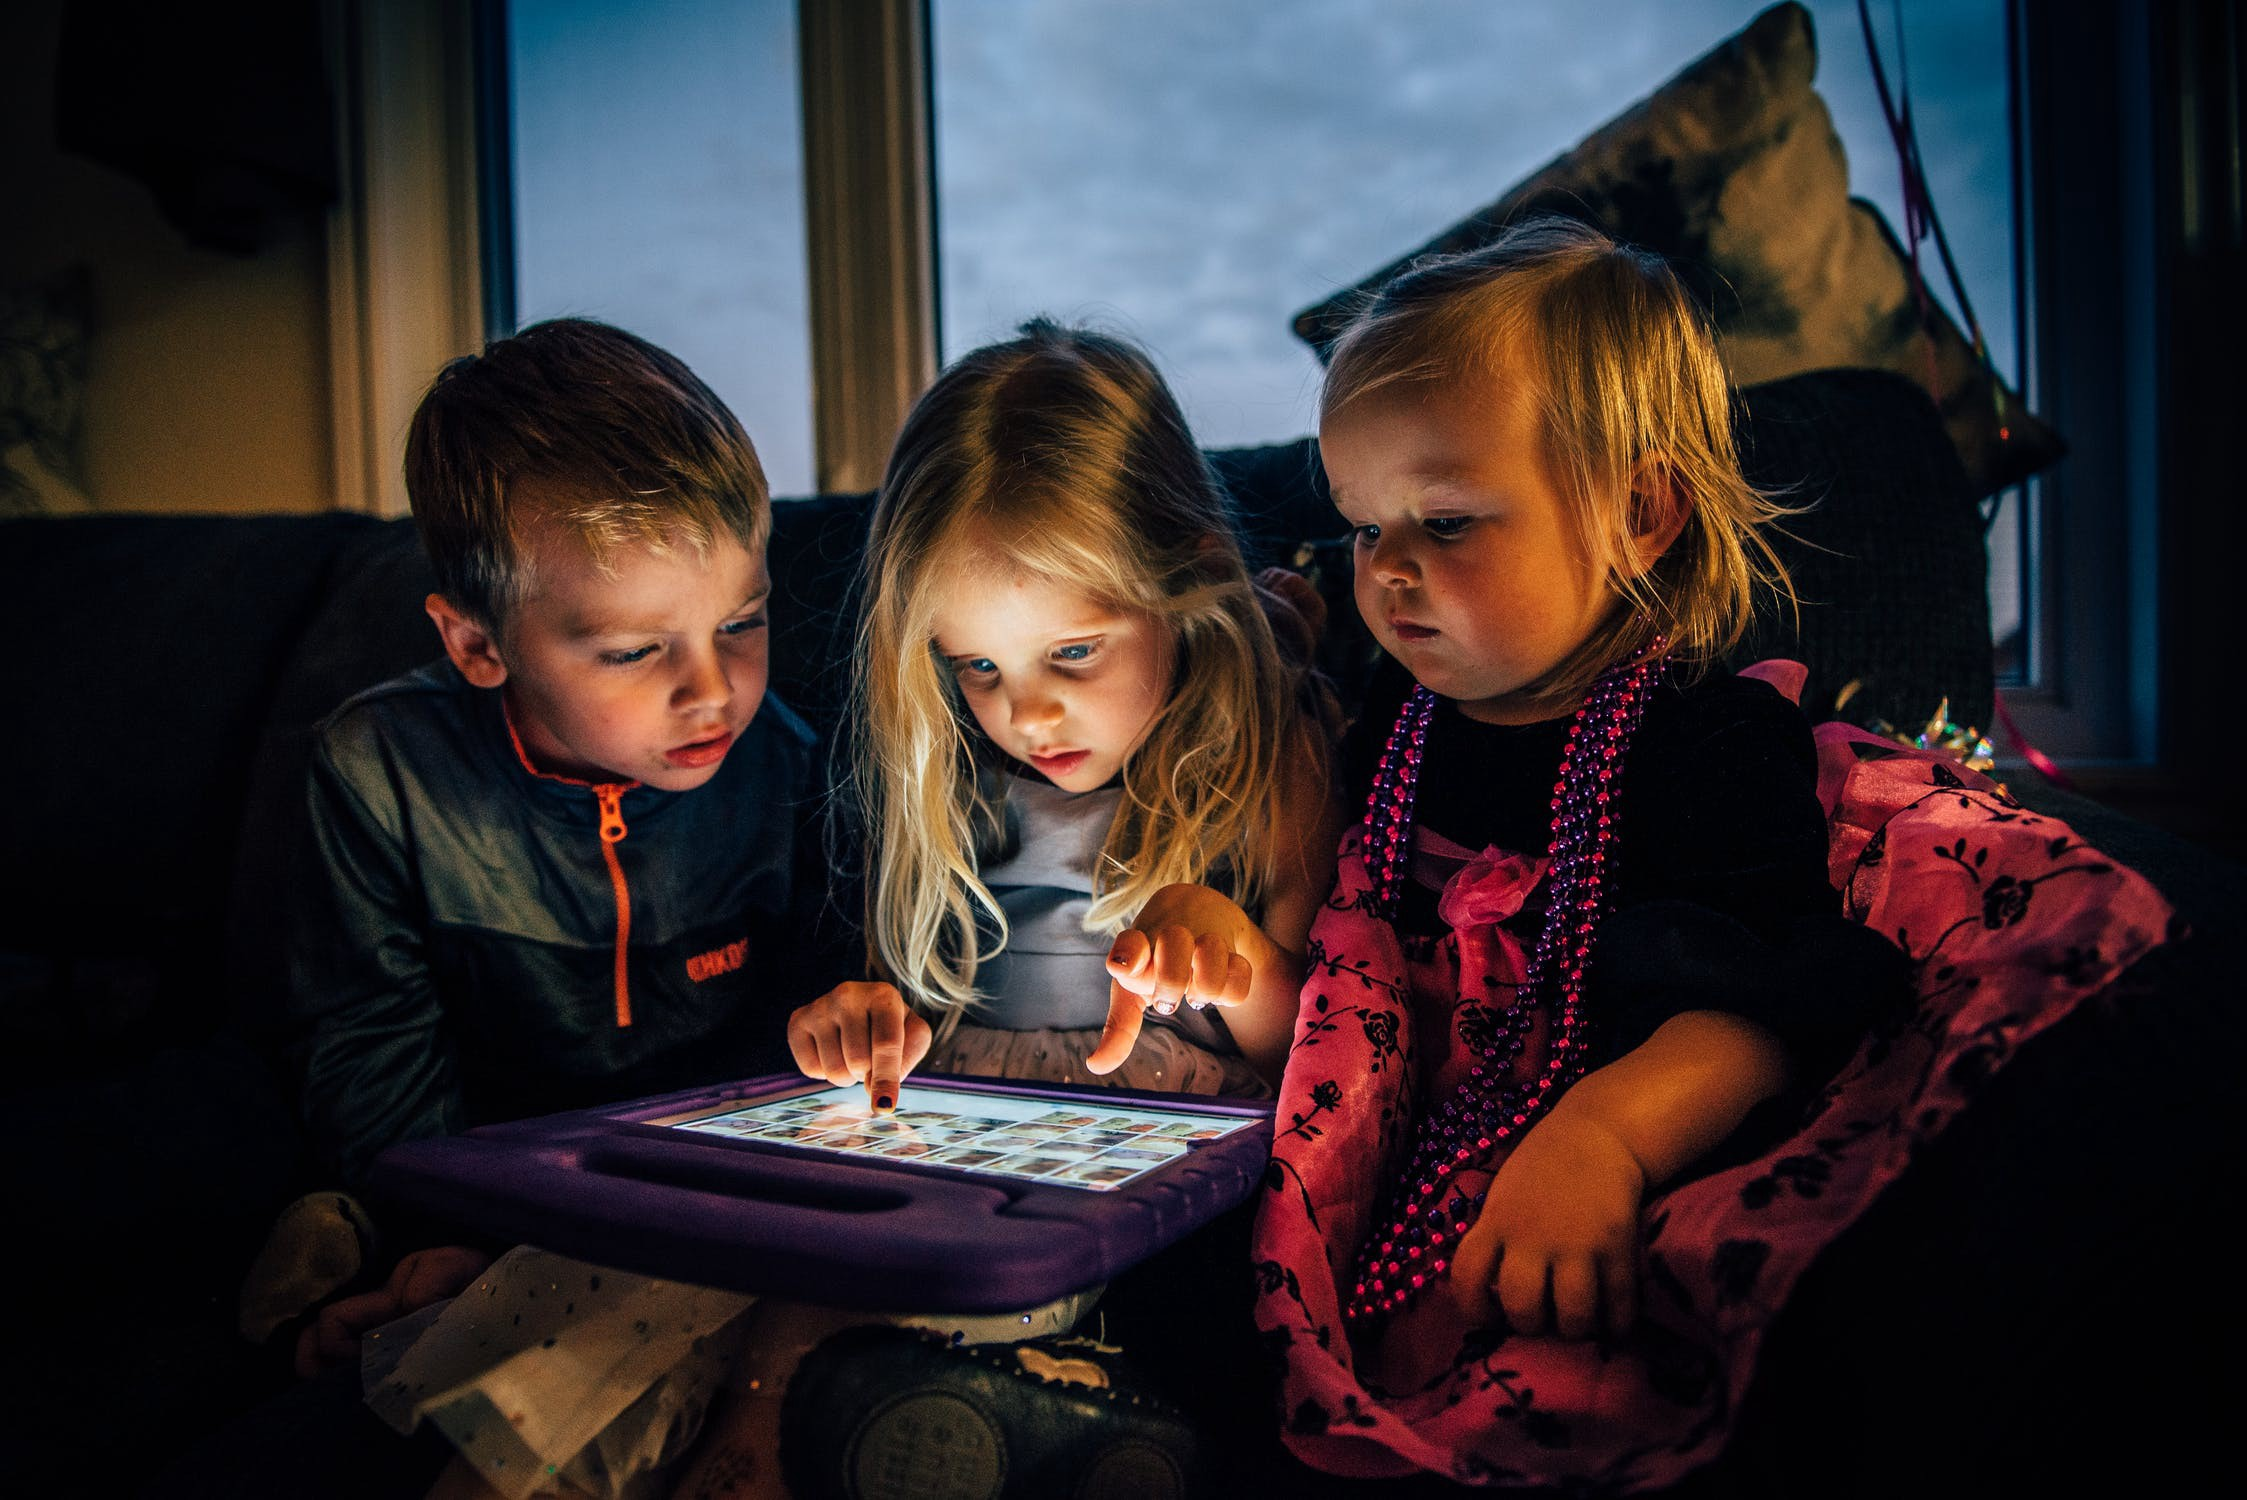 Distracted children using a tablet